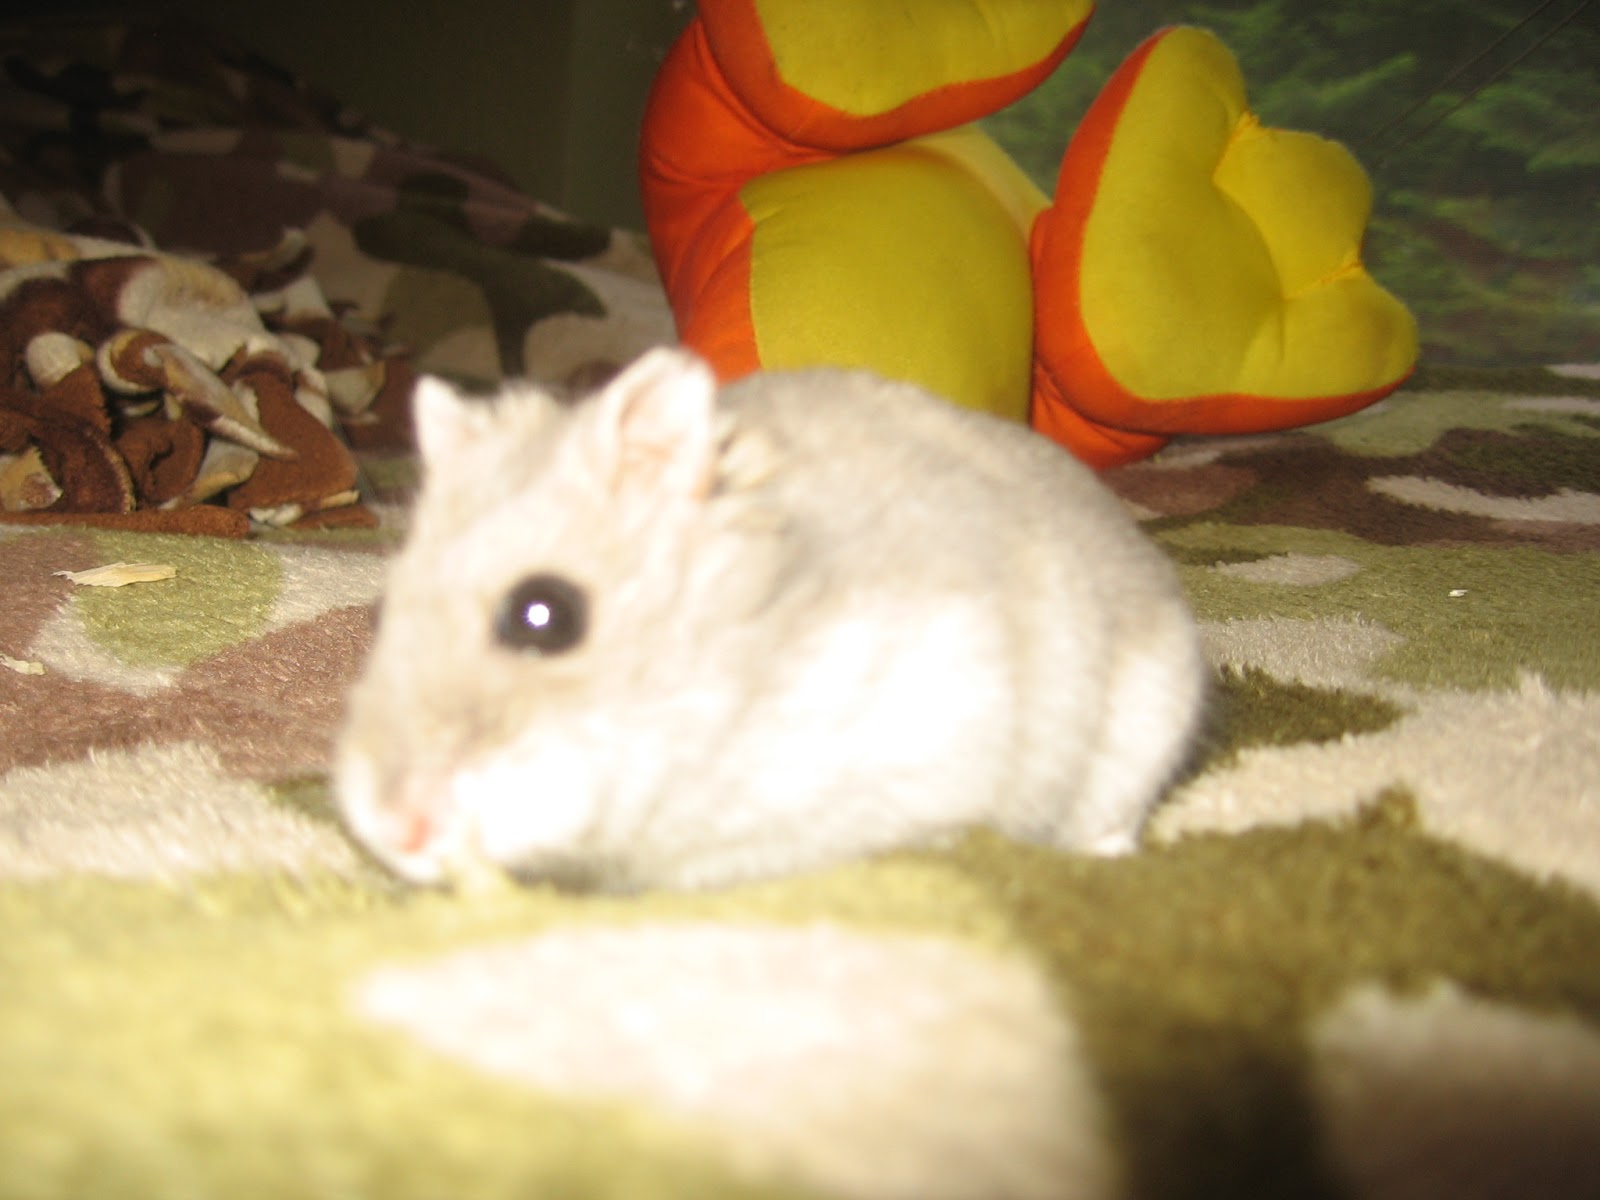 Paigey975 I highly recommend a gerbil instead of a hamster since these are much more friendly than hamsters My children who are now adults have always had pets